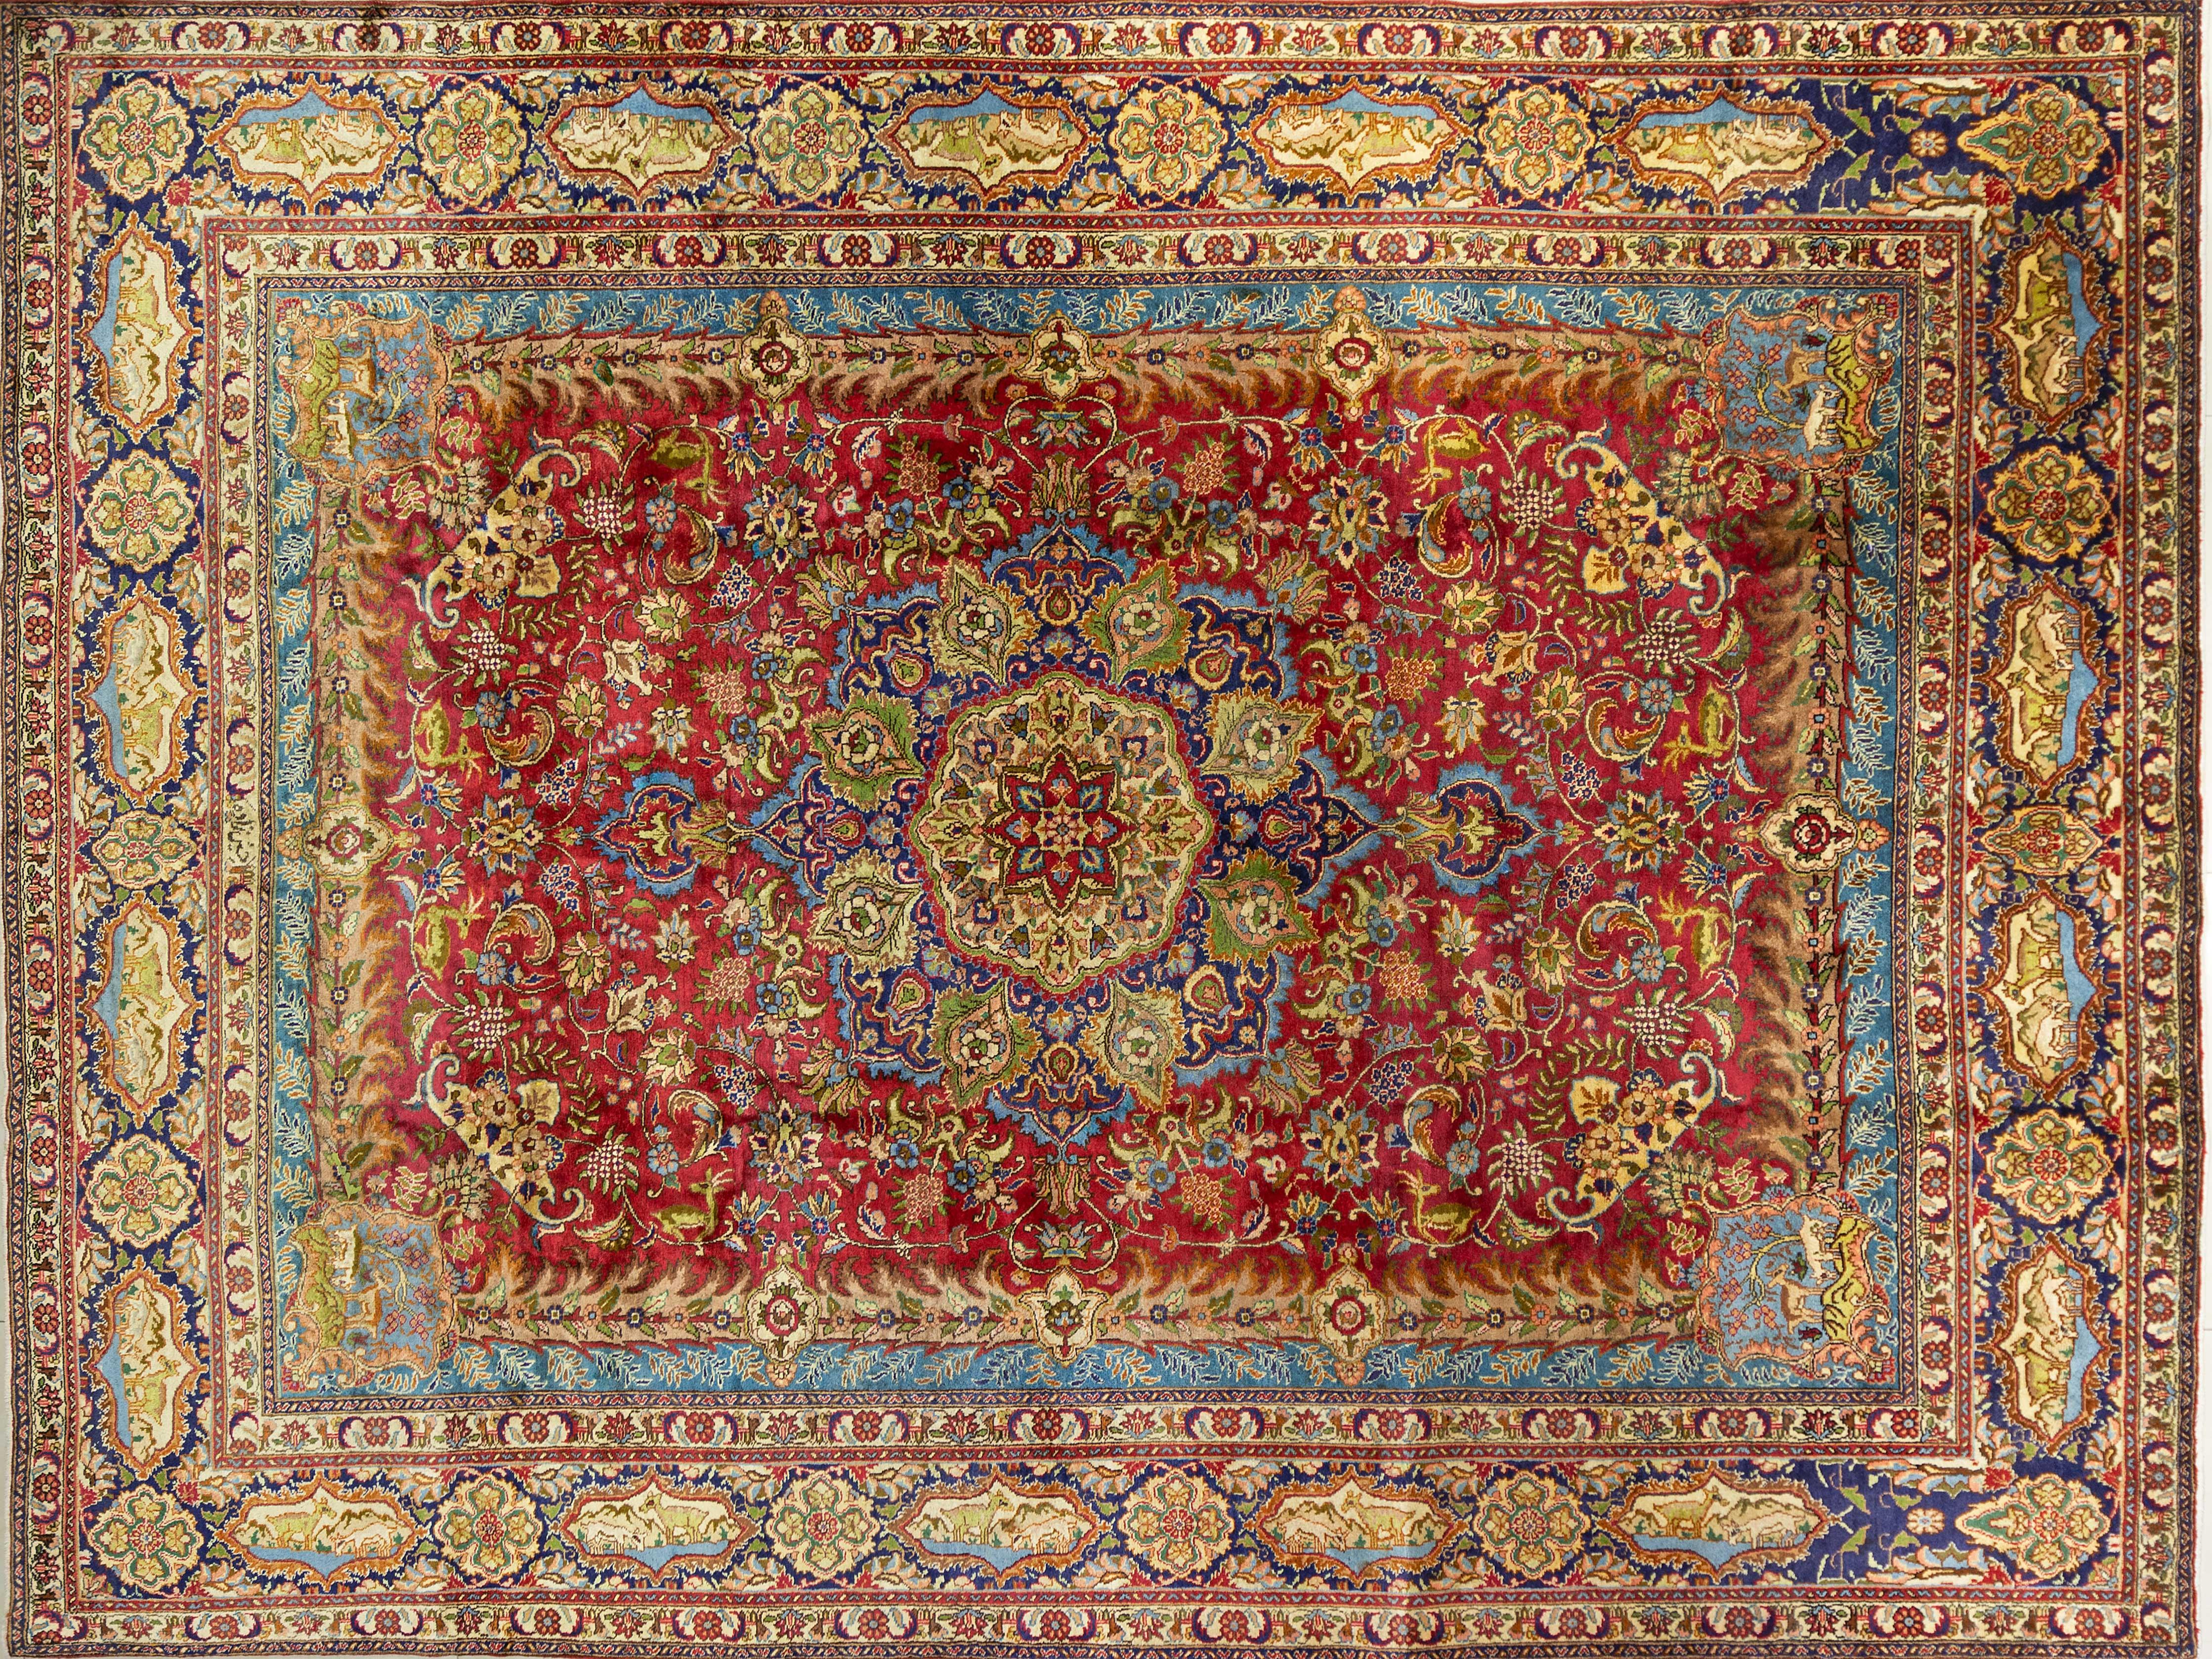 A Persian Hand Knotted Tabriz Carpet, 395 x 295